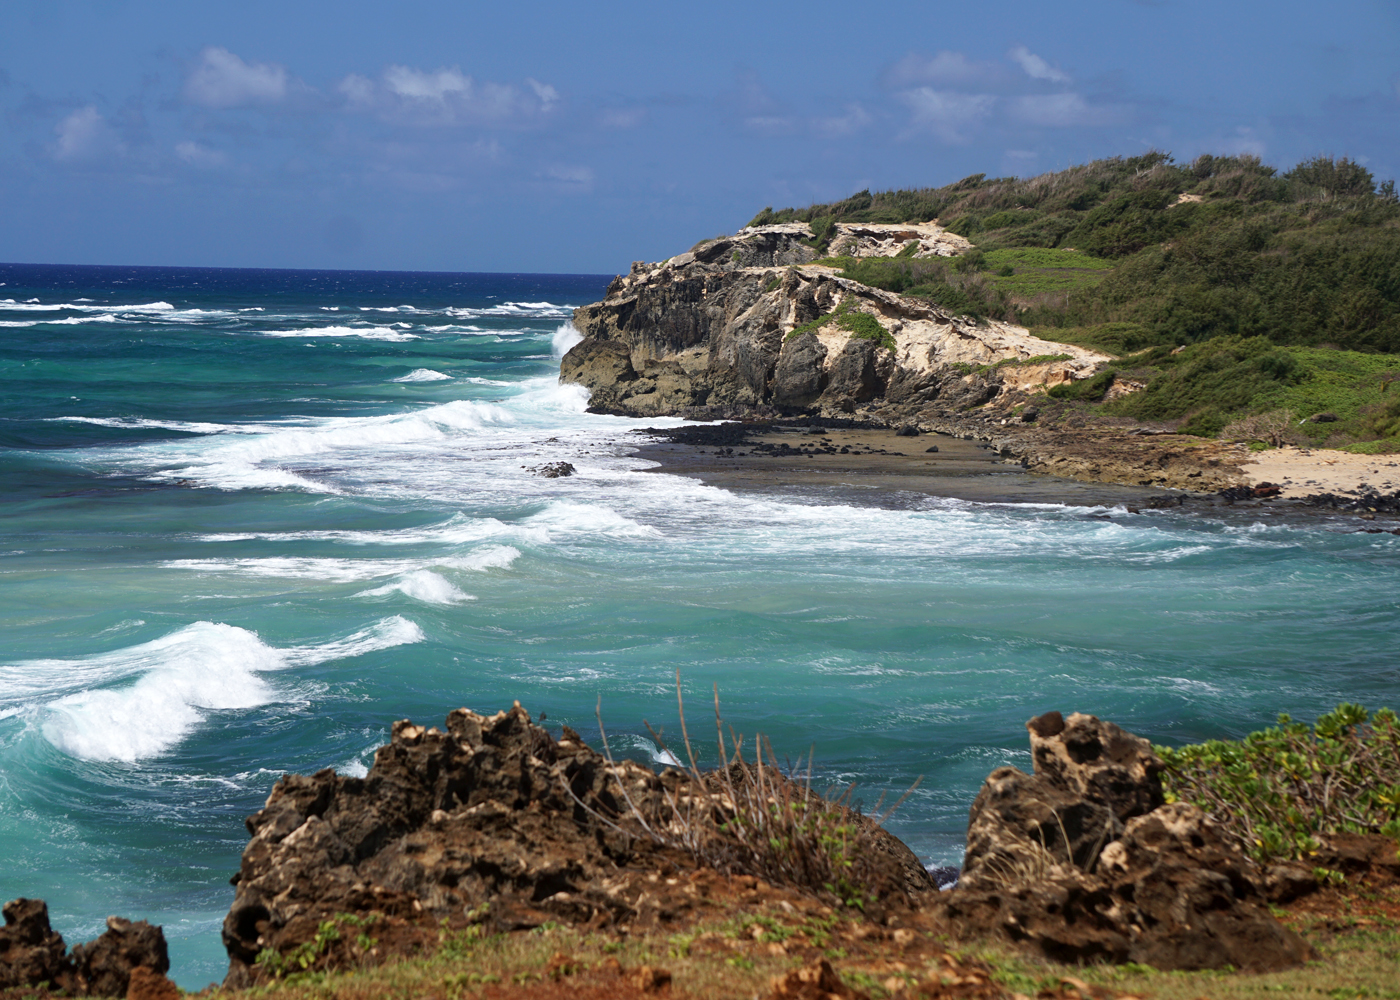 to Jean & Abbott Properties, one of the most recommended and trusted travel agencies on Kauai. If you are a discerning traveler seeking the ultimate Kauai vacation experience, you have come to .